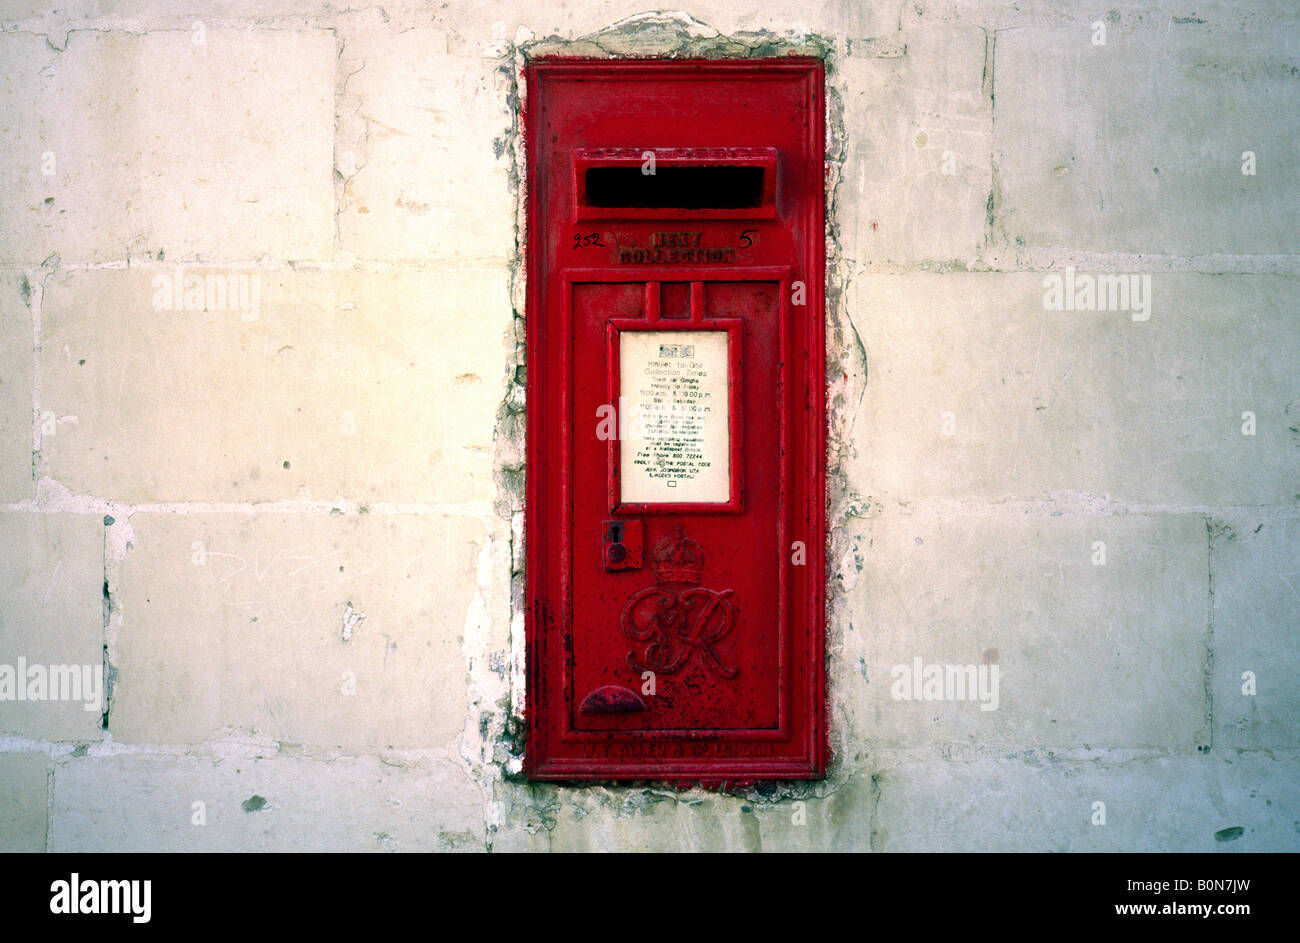 April 7, 2004 - British colonial heritage in the Maltese capital of Valletta. Stock Photo